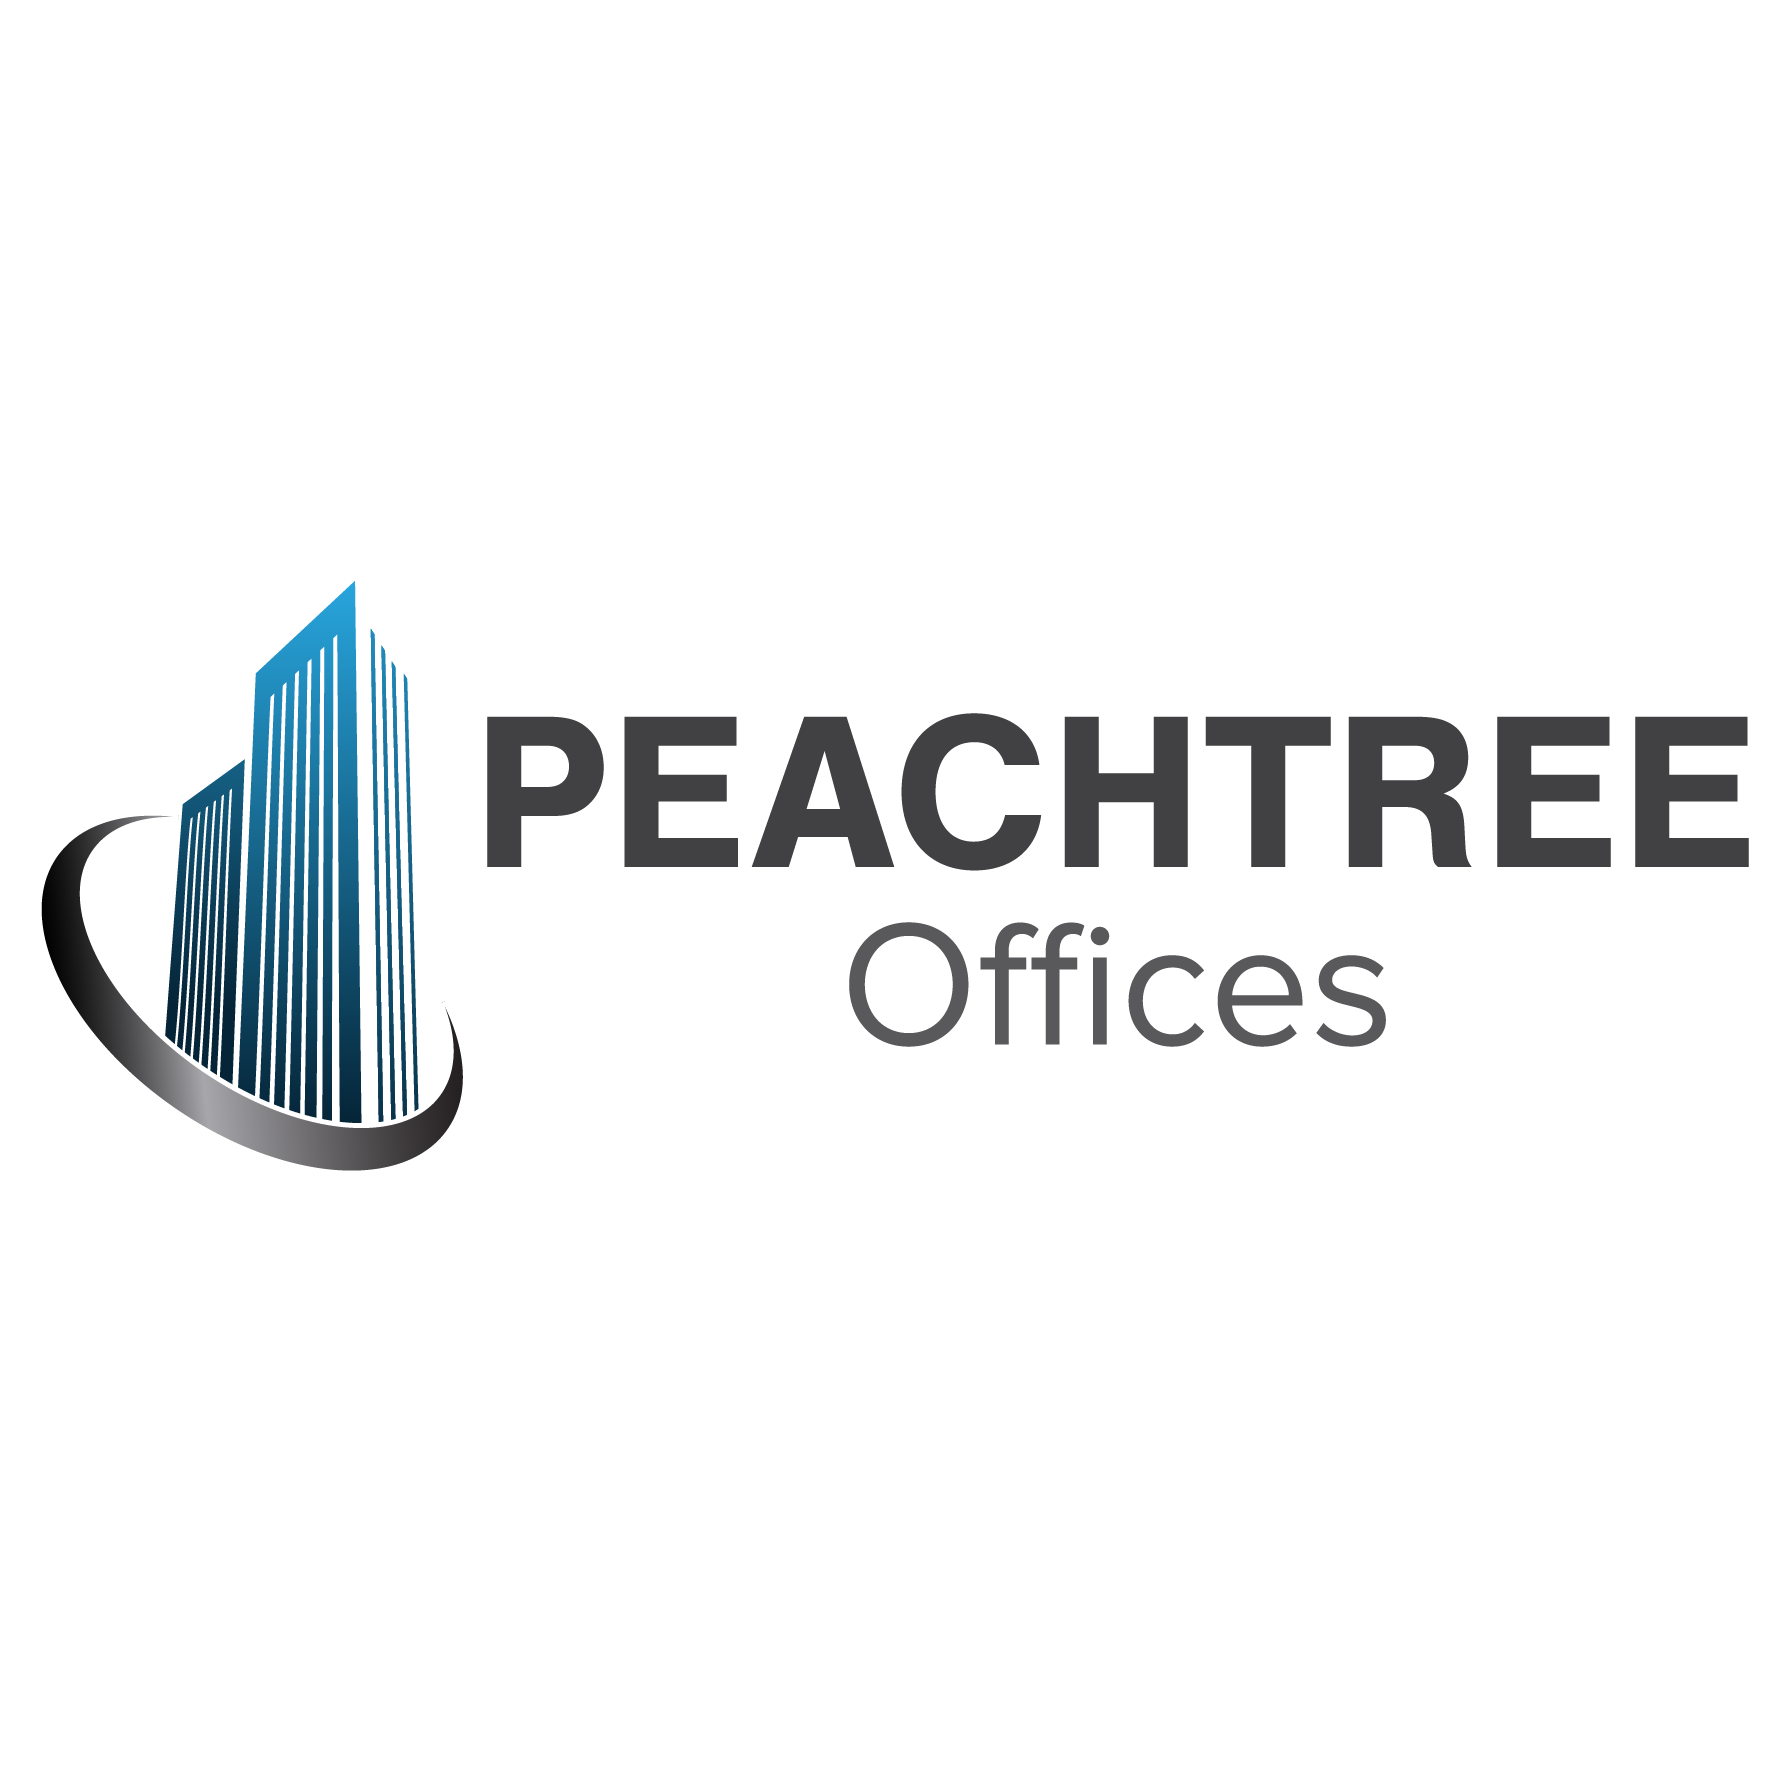 Peachtree Offices image 7